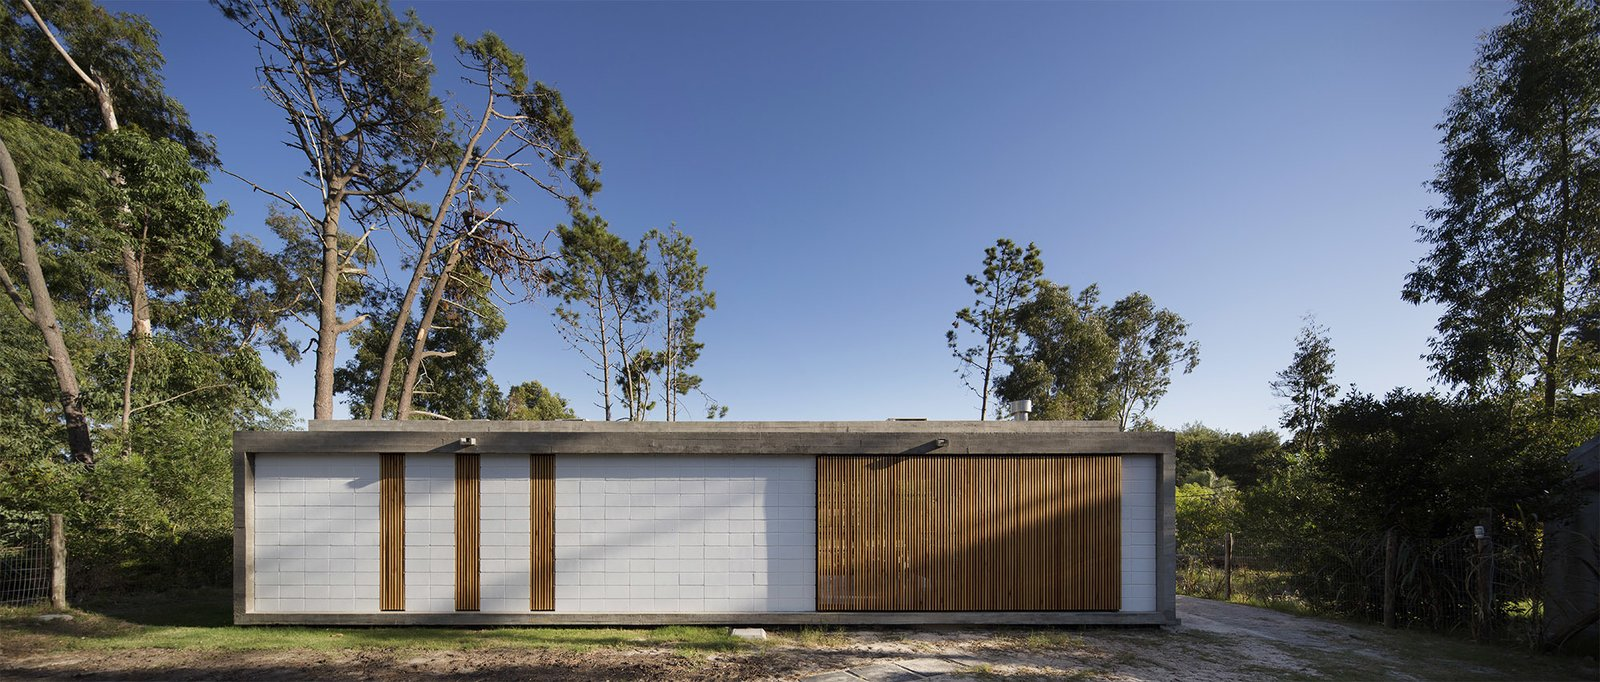 Exterior, House Building Type, Wood Siding Material, Concrete Siding Material, and Flat RoofLine  MARINDIA HOUSE